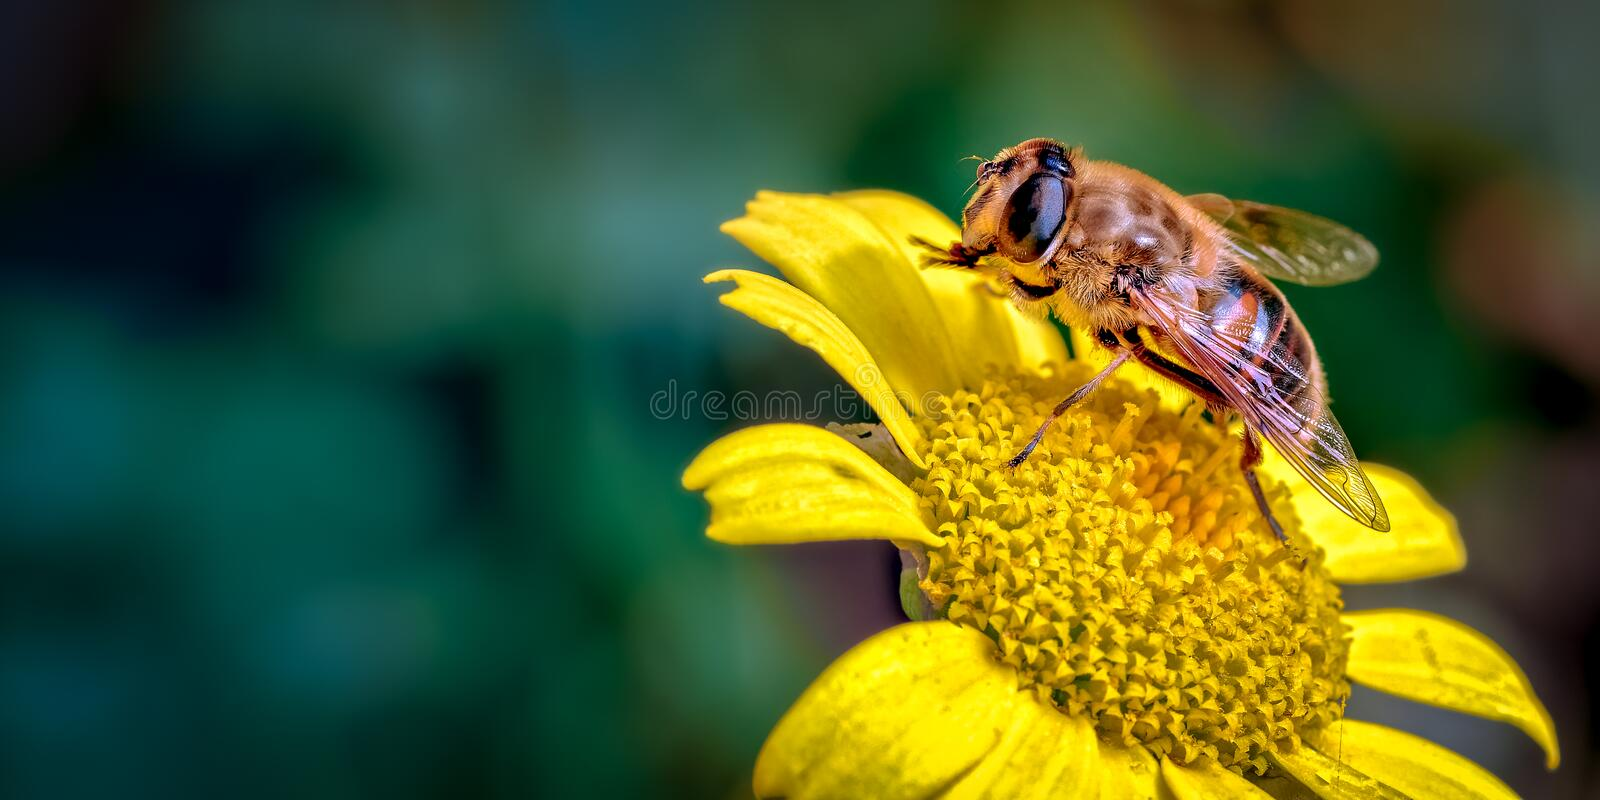 Drone-Fly, Eristalis tenax a bee mimic on Daisy Like Flower Cleaning its Front Legs stock photo